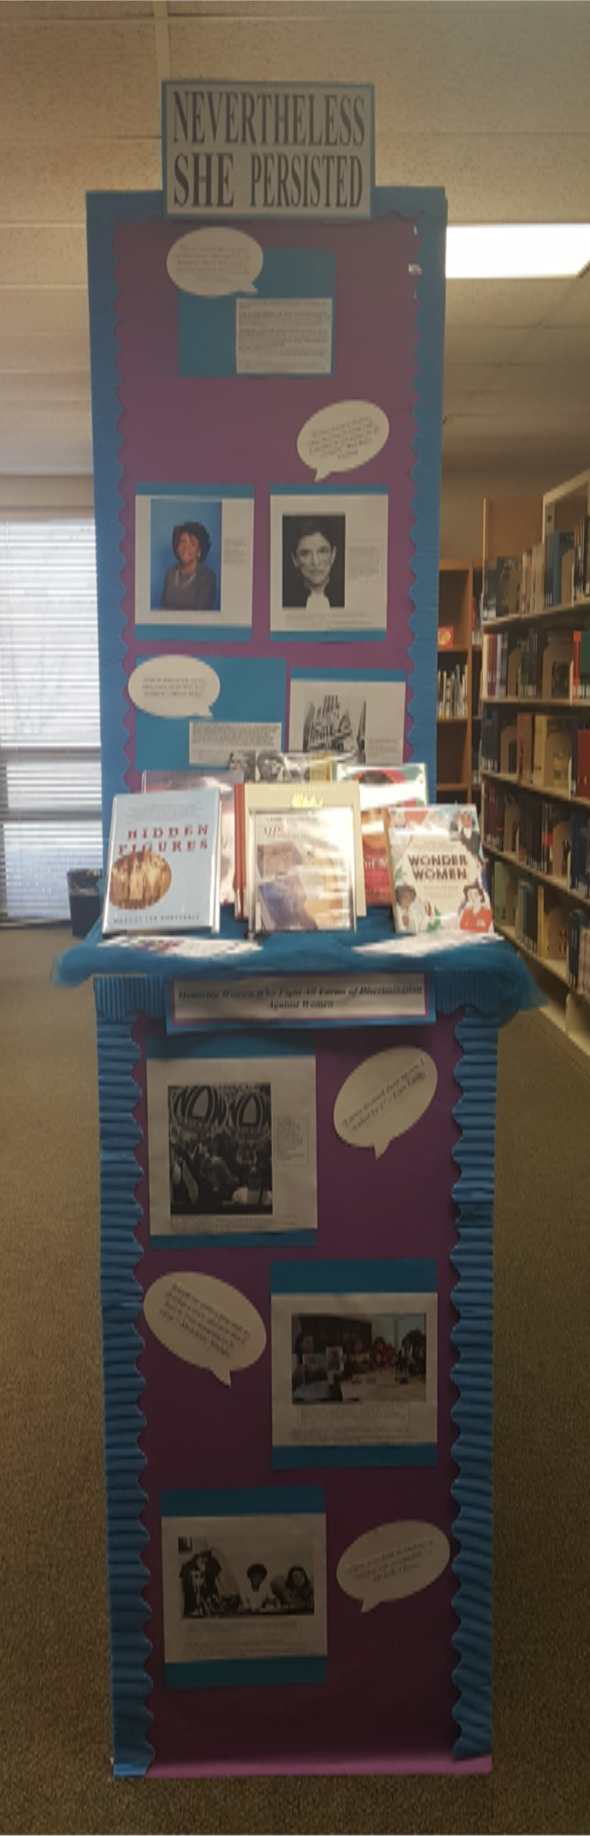 Image:  National Women's History Month Display